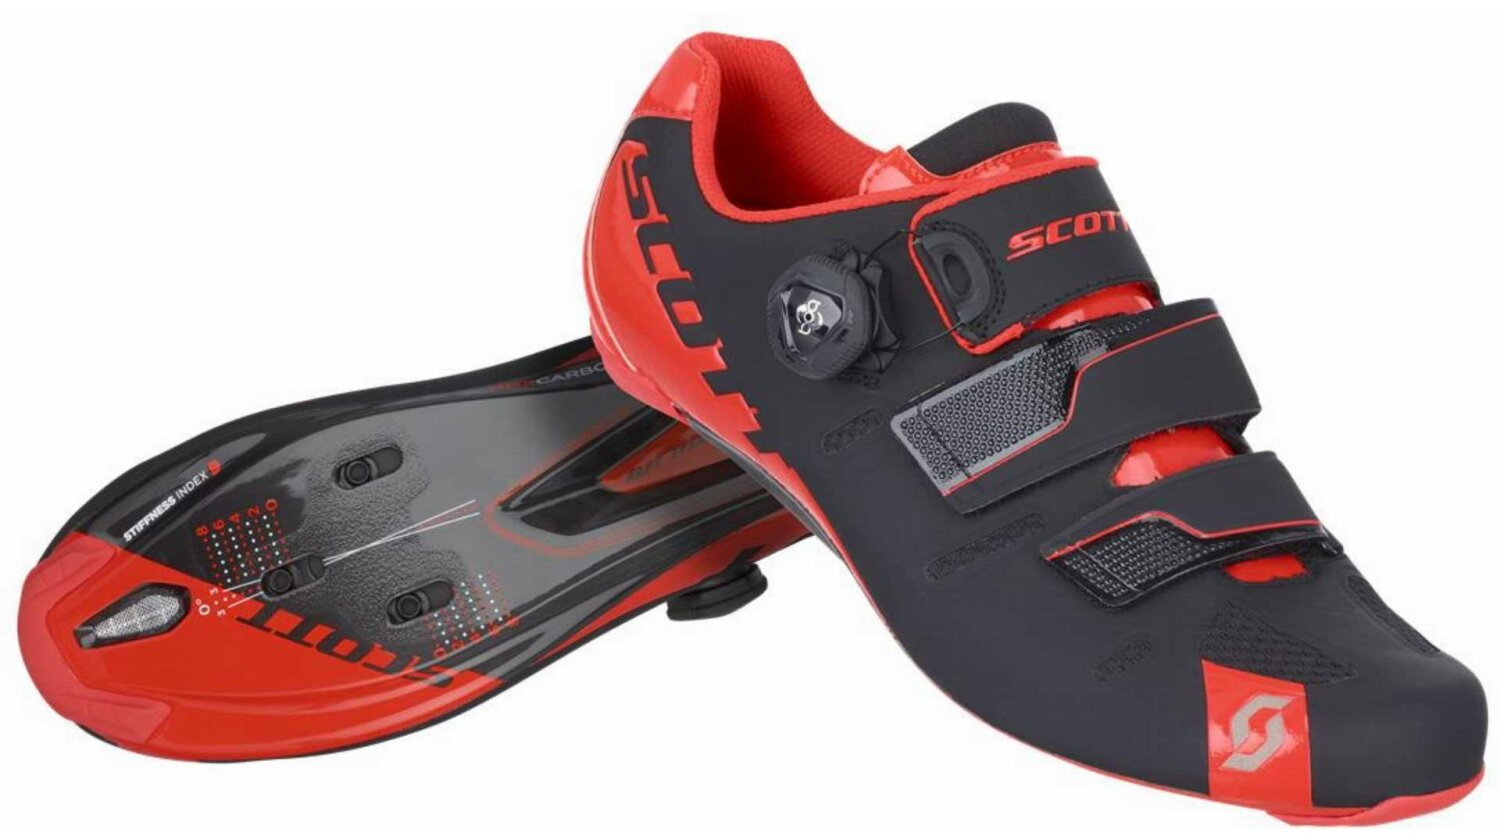 Scott Road Premium Schuh black/neon red gloss 38